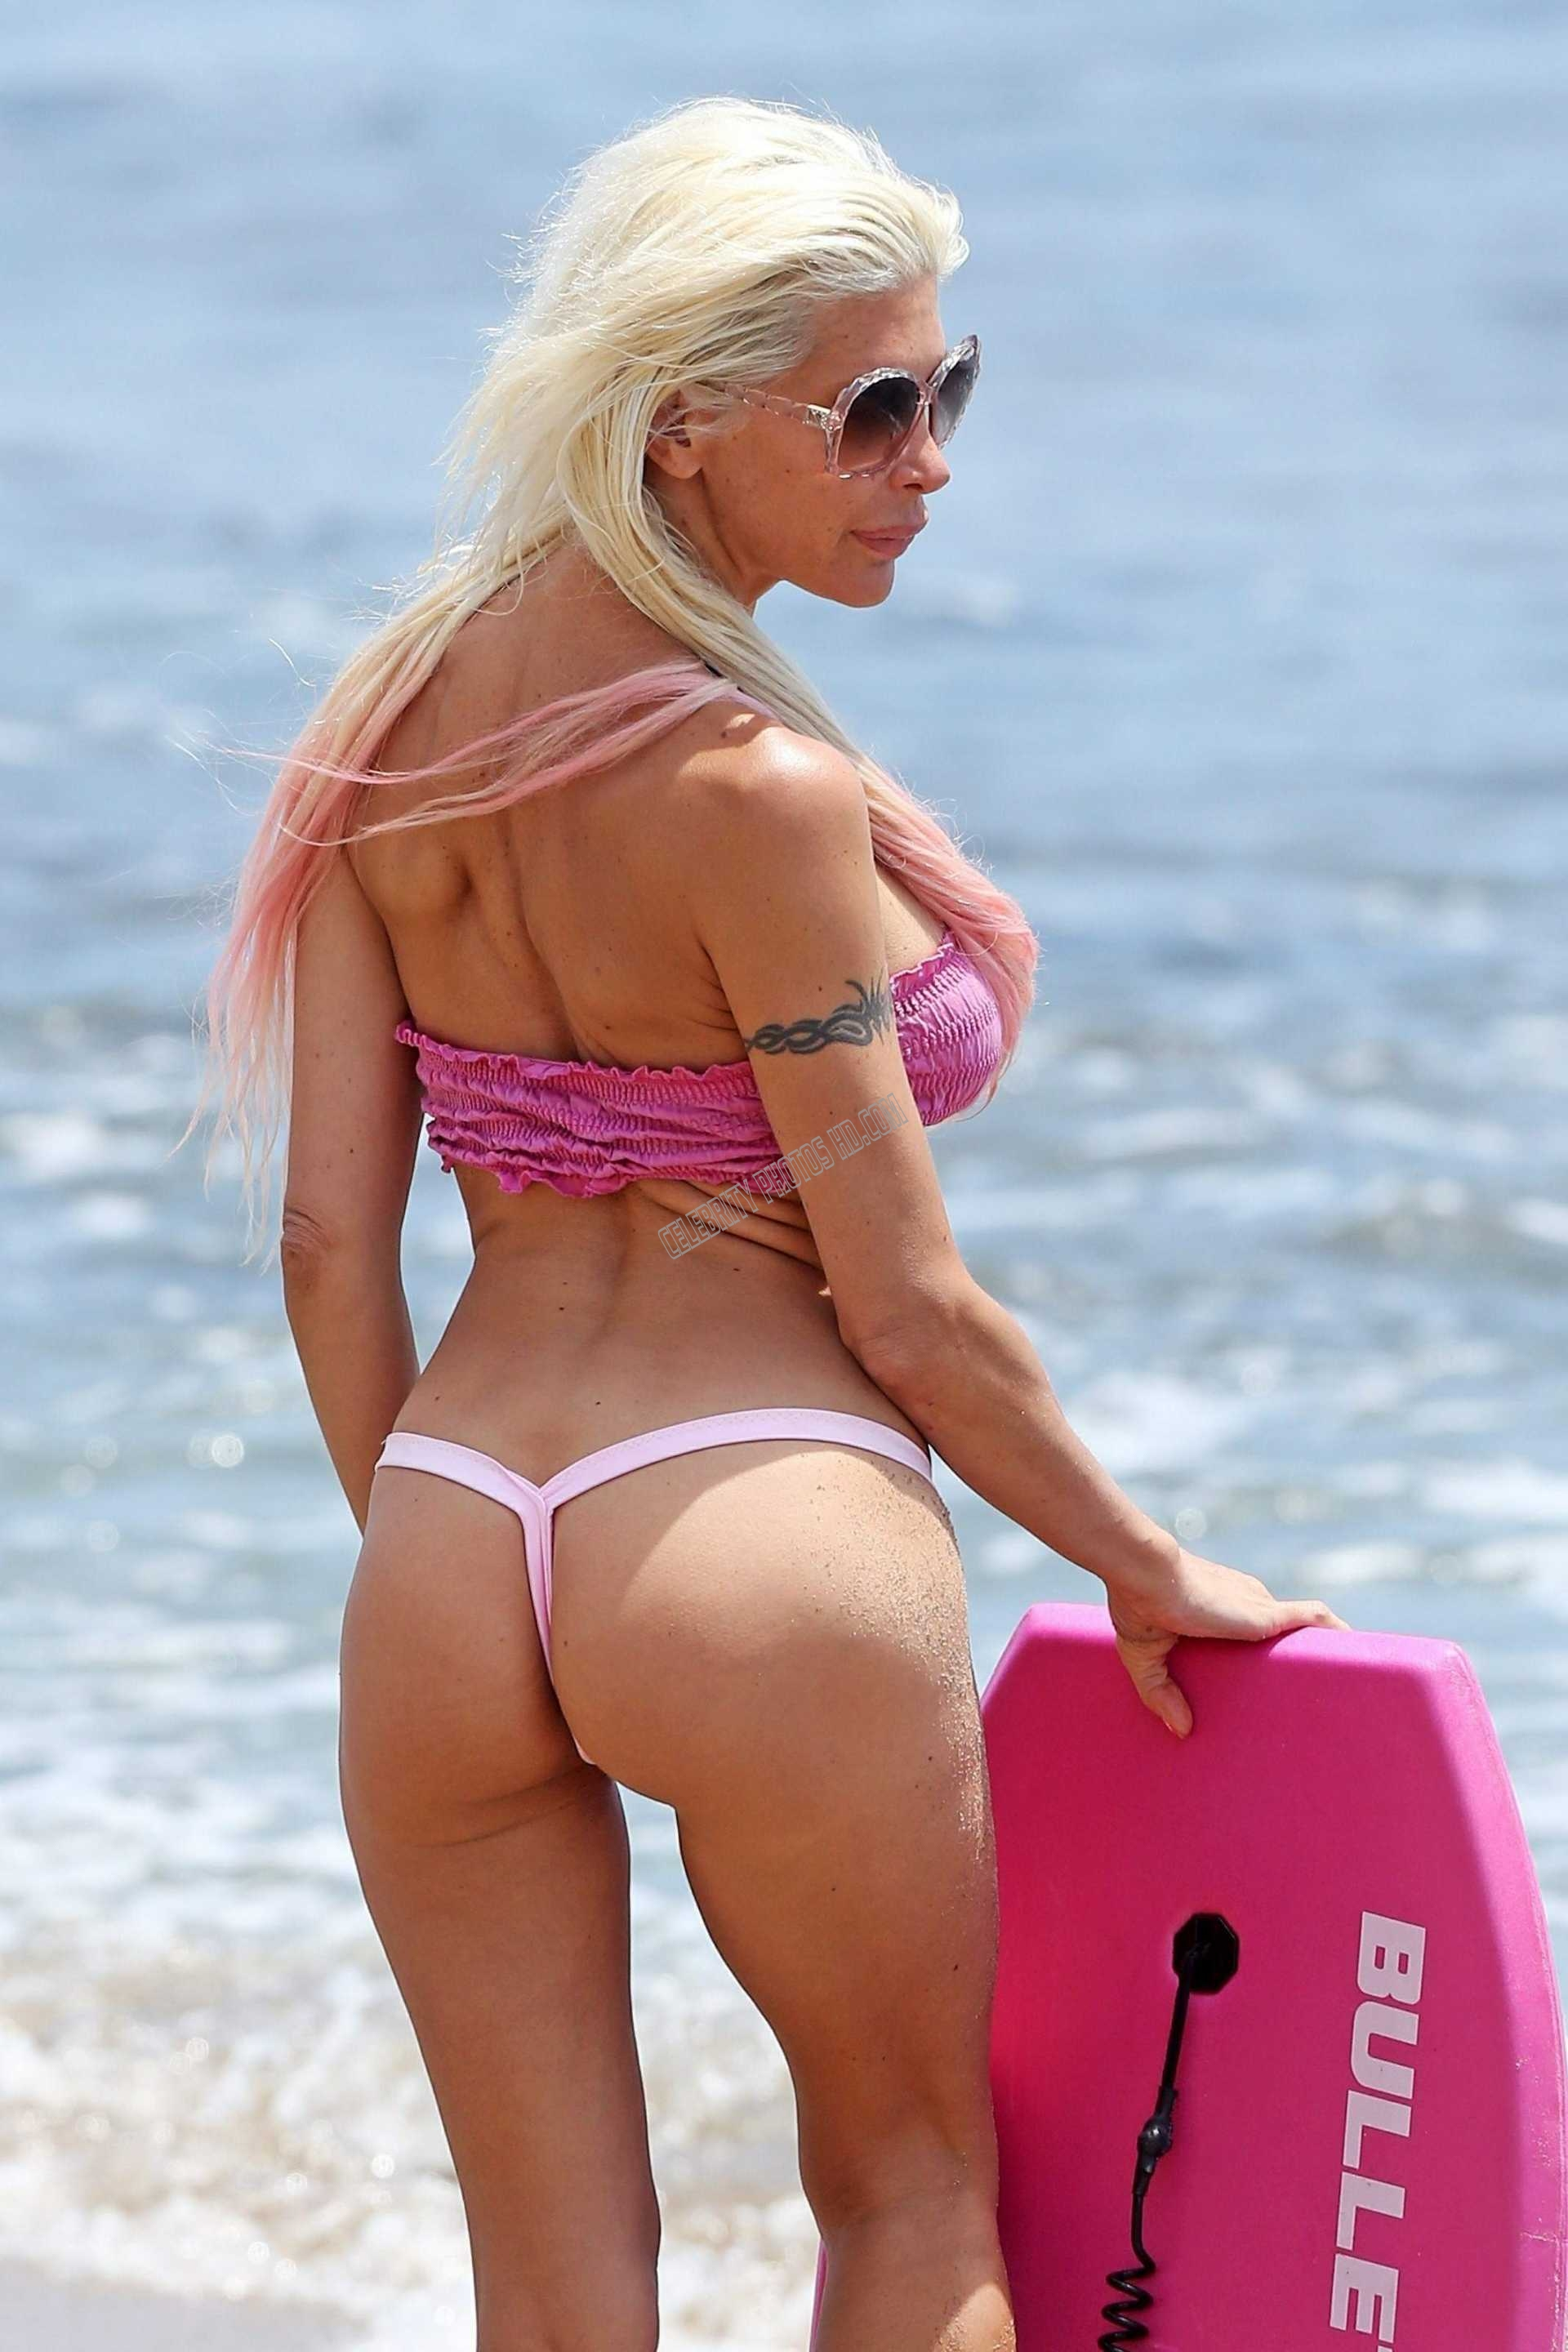 Angelique Morgan Hot angelique morgan on a photoshoot for malibu beach in a pink